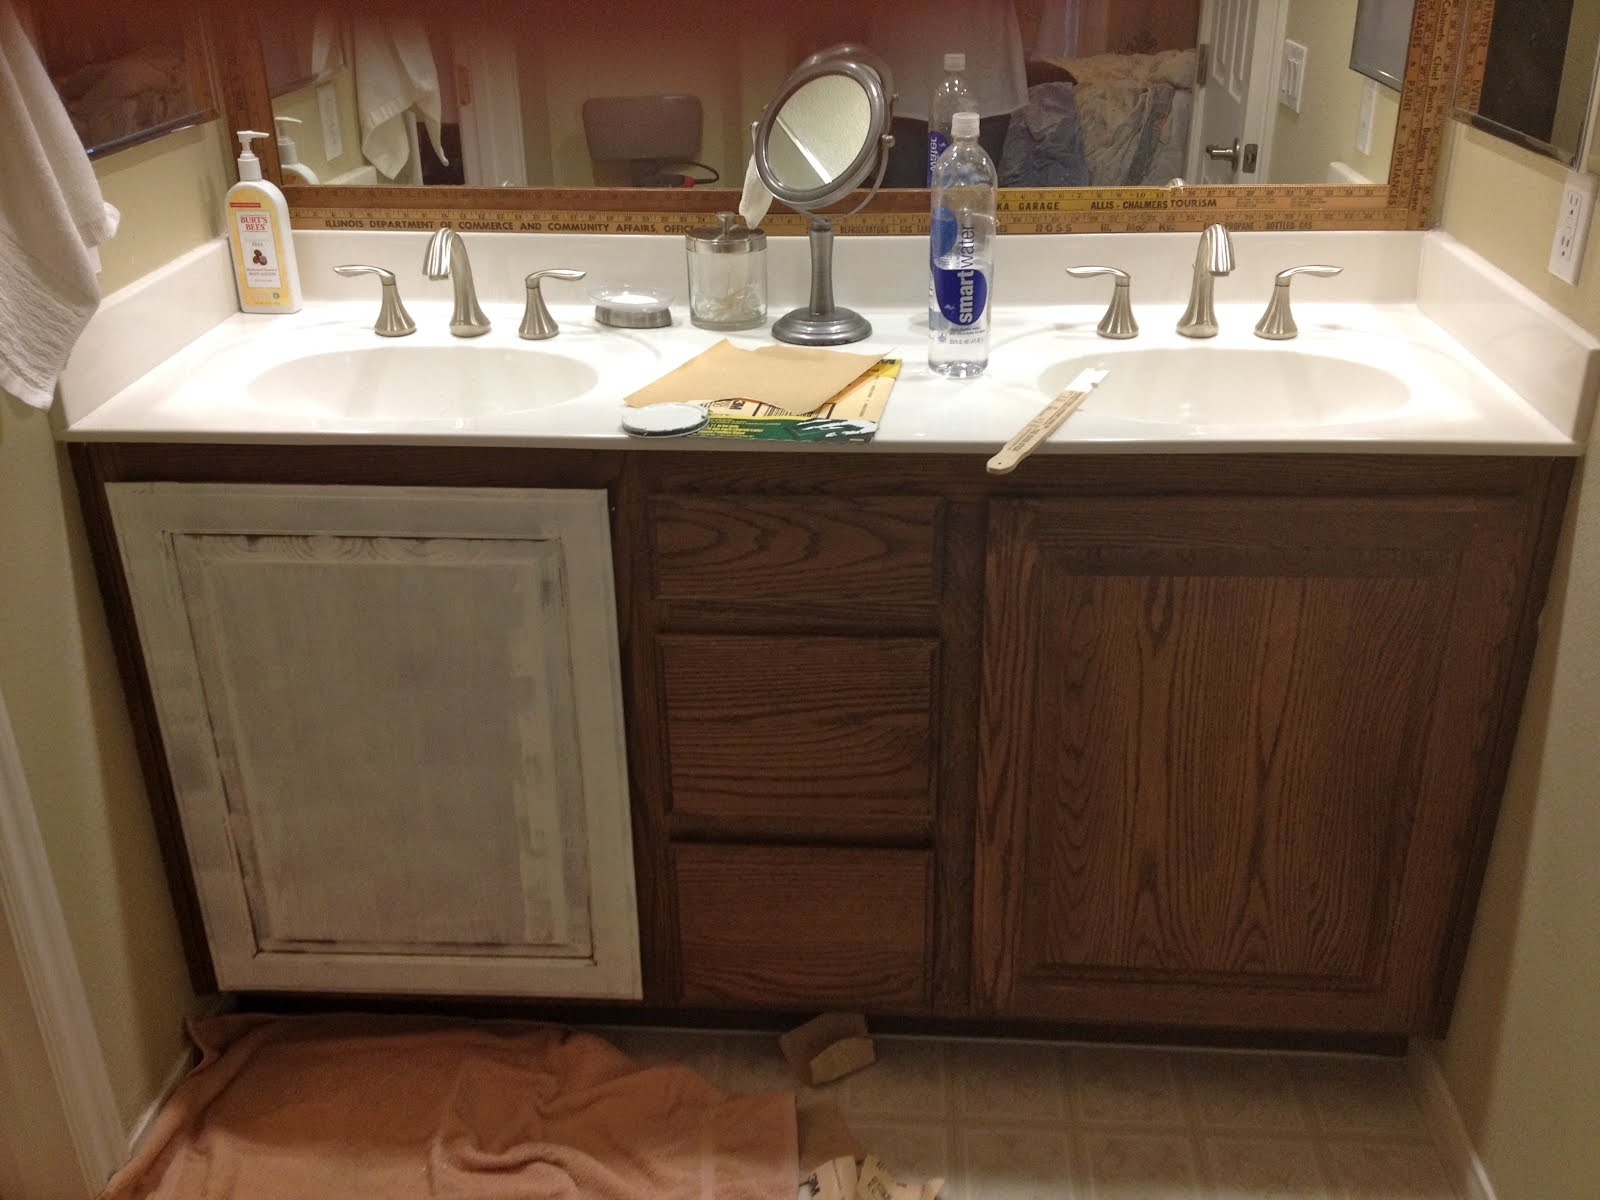 Refinishing Bathroom Cabinets With Paint